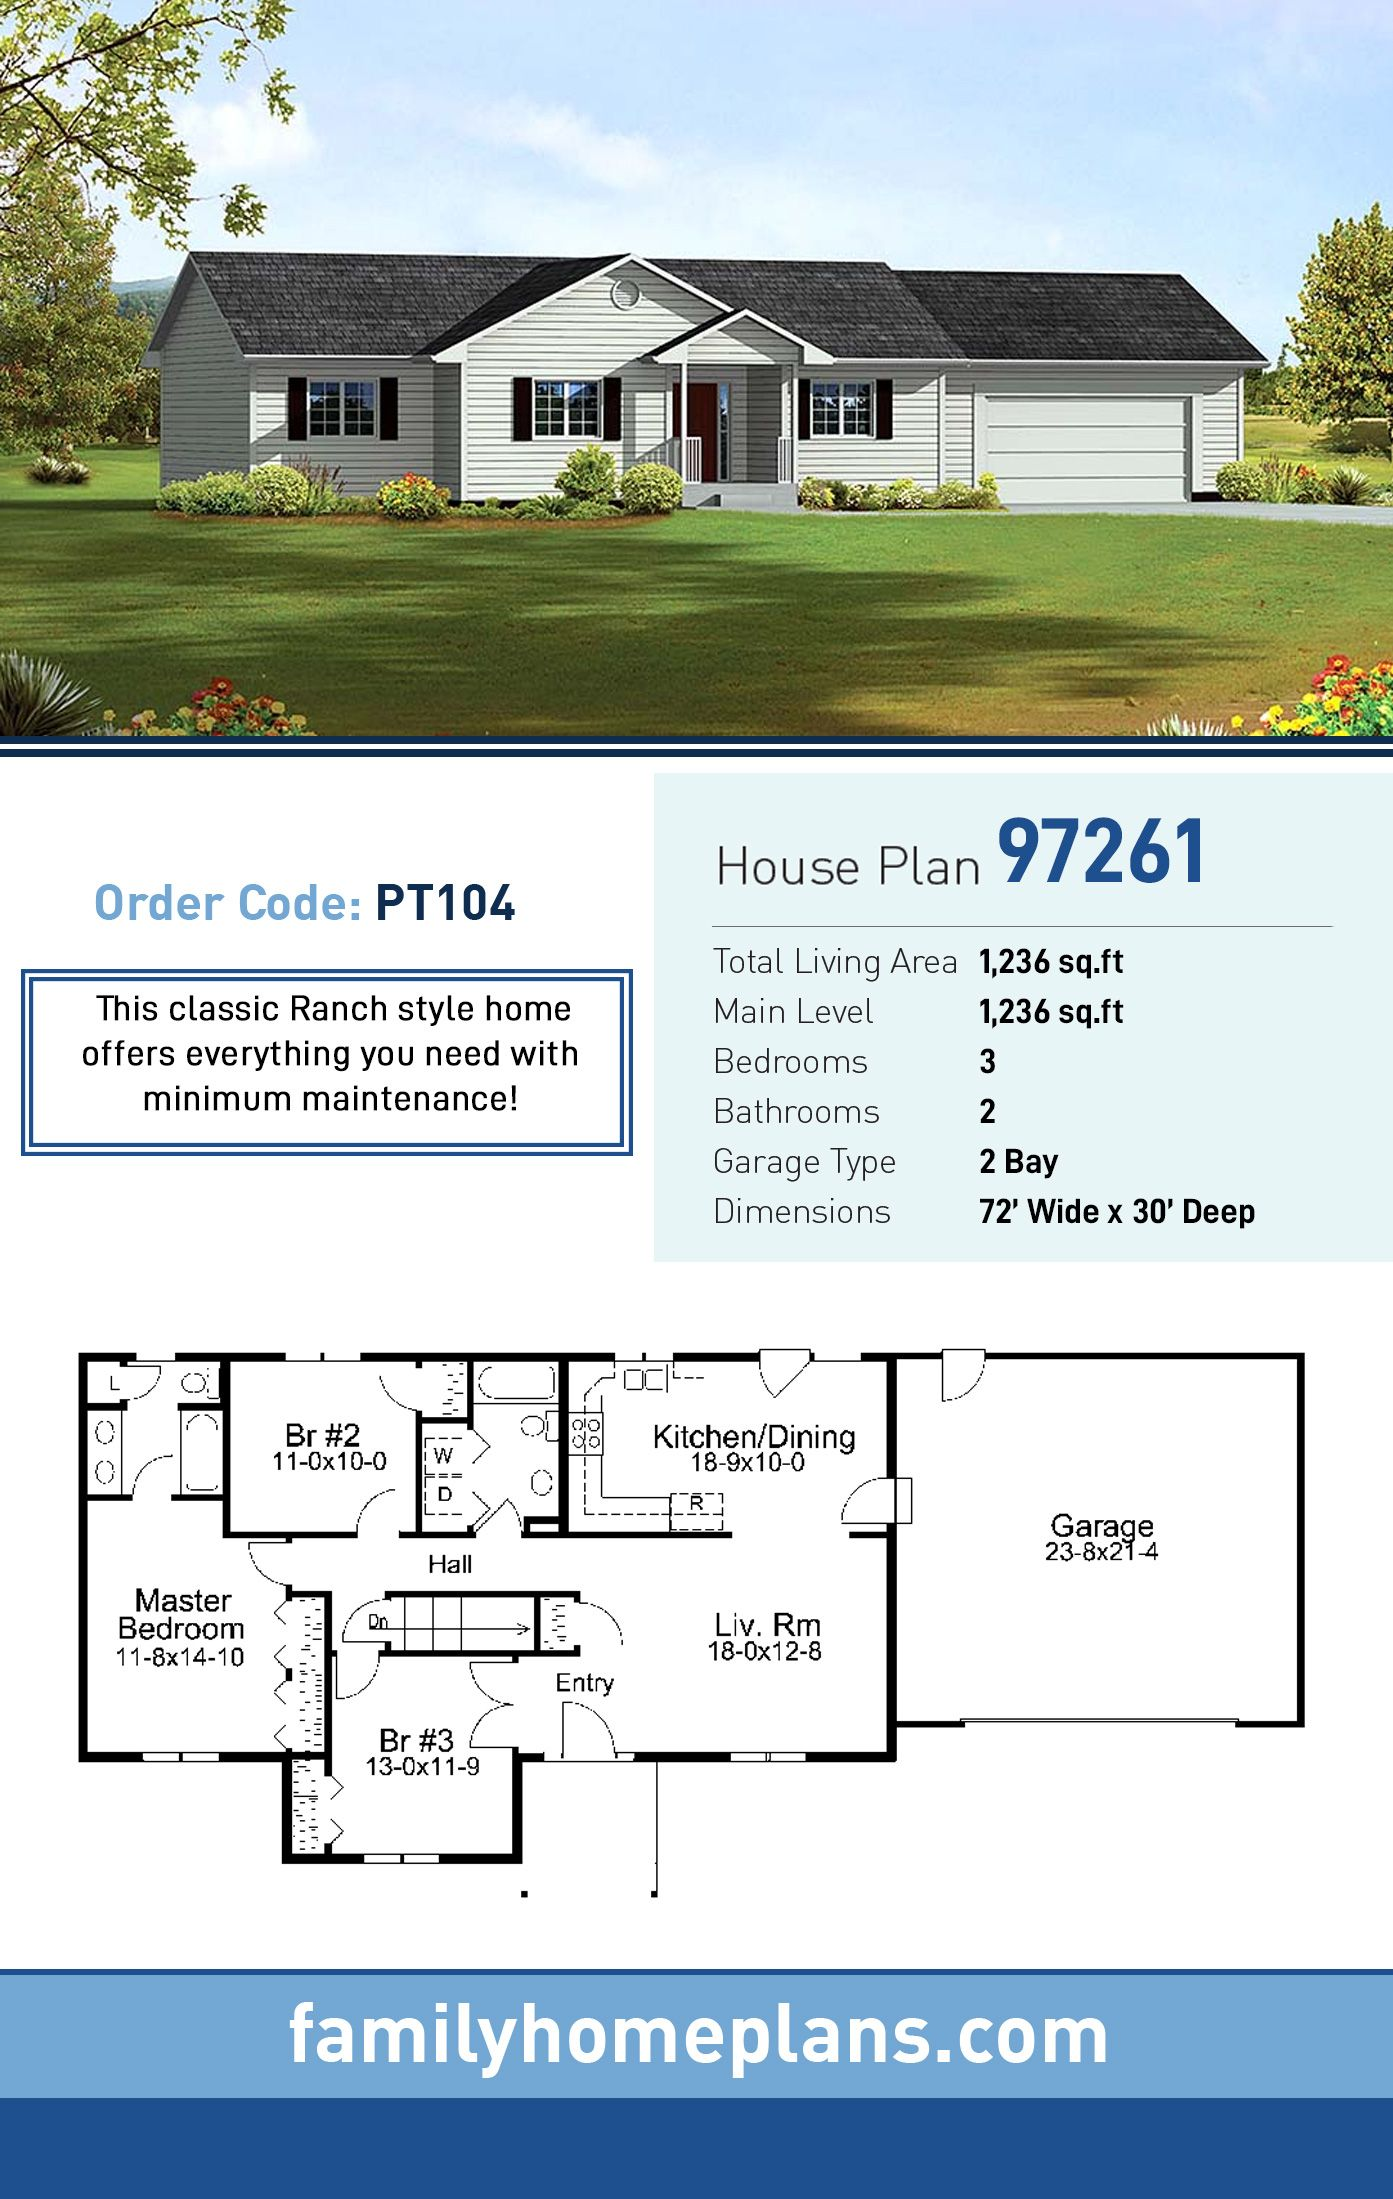 Traditional Style House Plan 97261 With 3 Bed 2 Bath 2 Car Garage Country Style House Plans House Plans Free House Plans